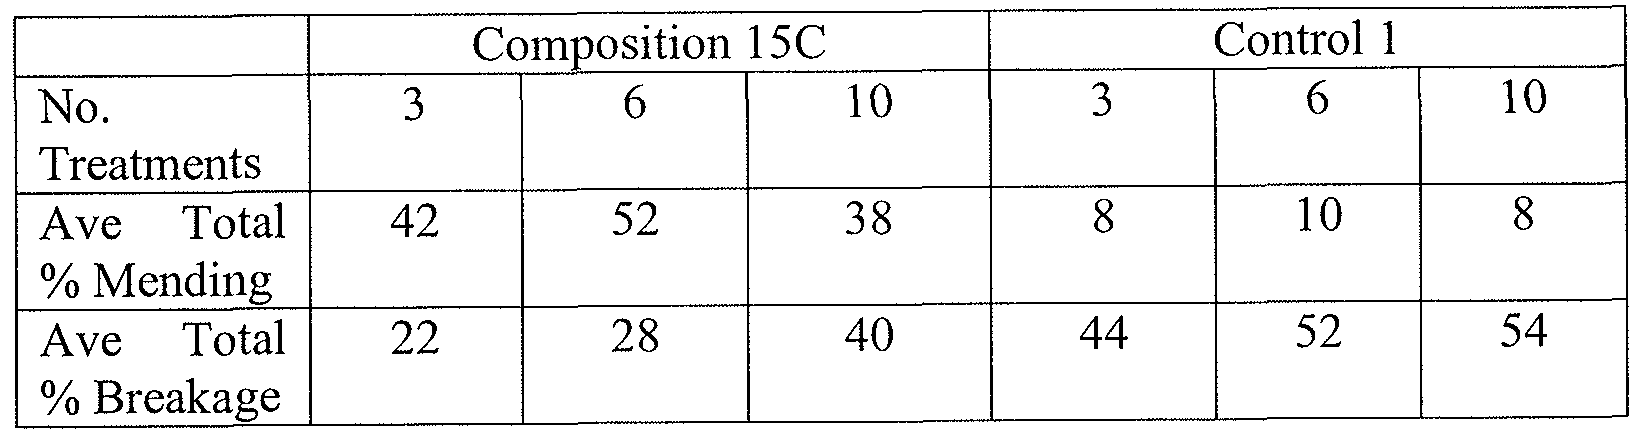 WO2012054243A2 - Hair-mending compositions and associated